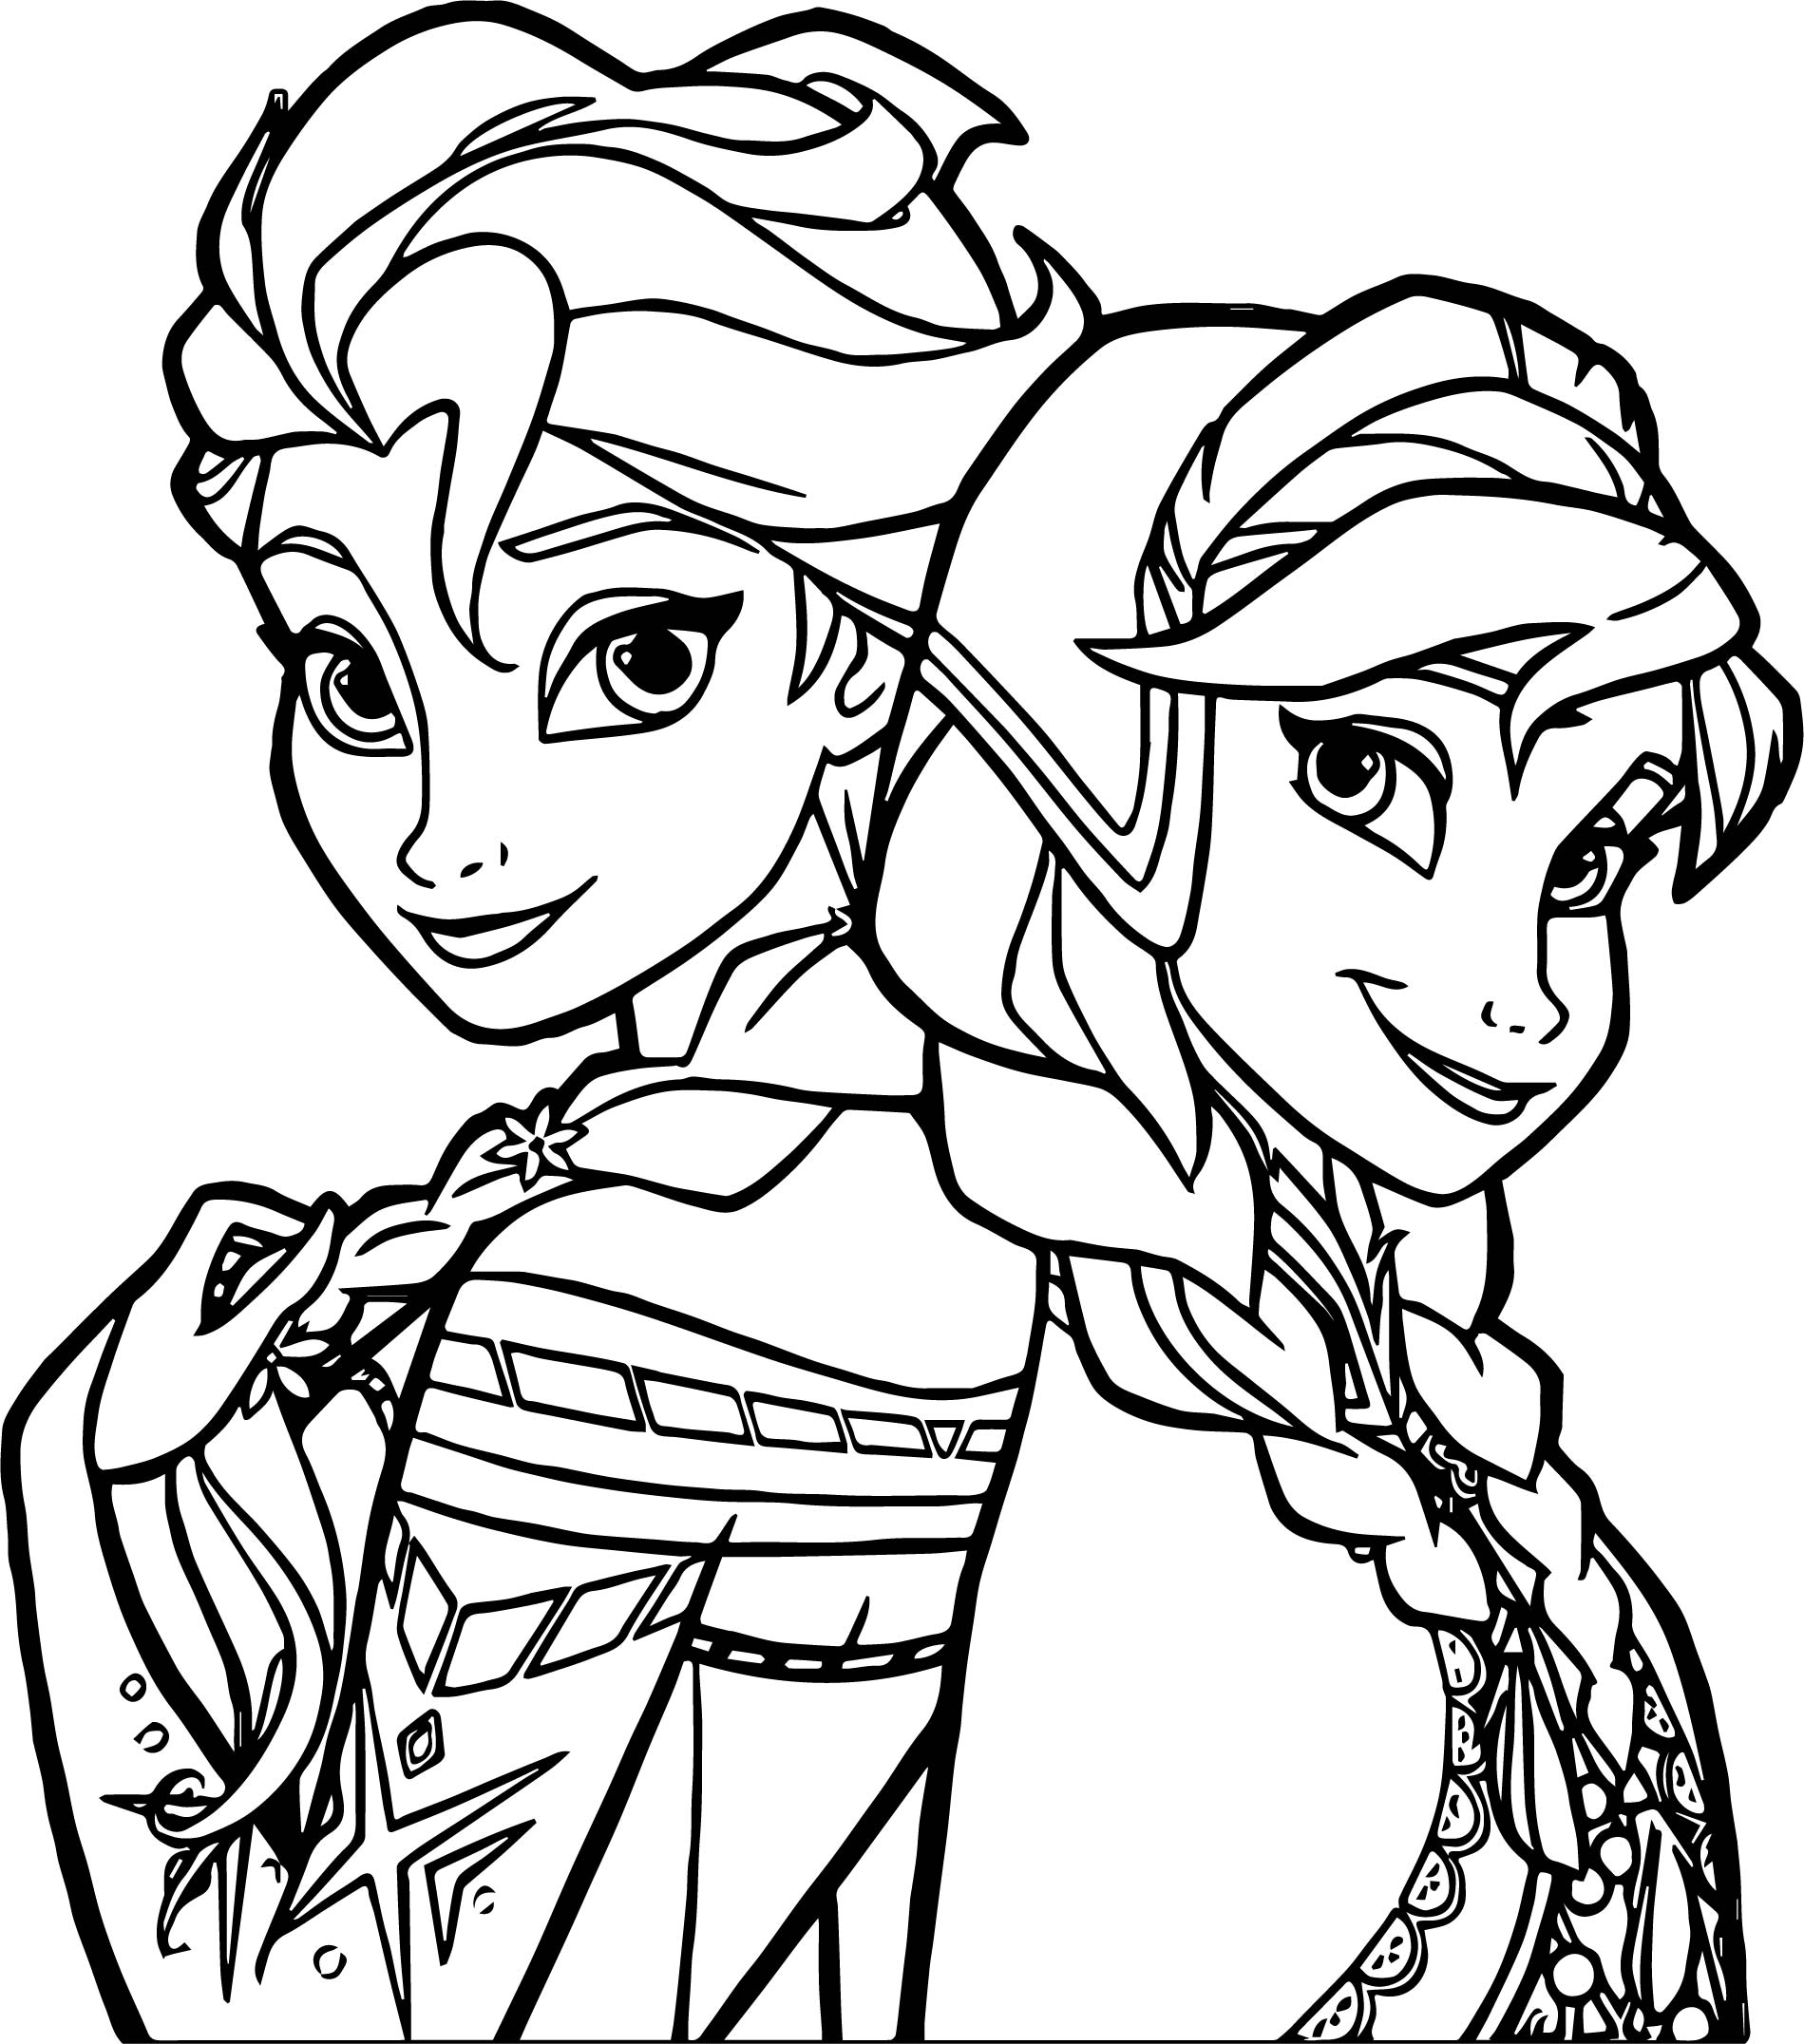 Frozen Sisters Coloring Page Wecoloringpage Printable Coloring Pages For Frozen Free